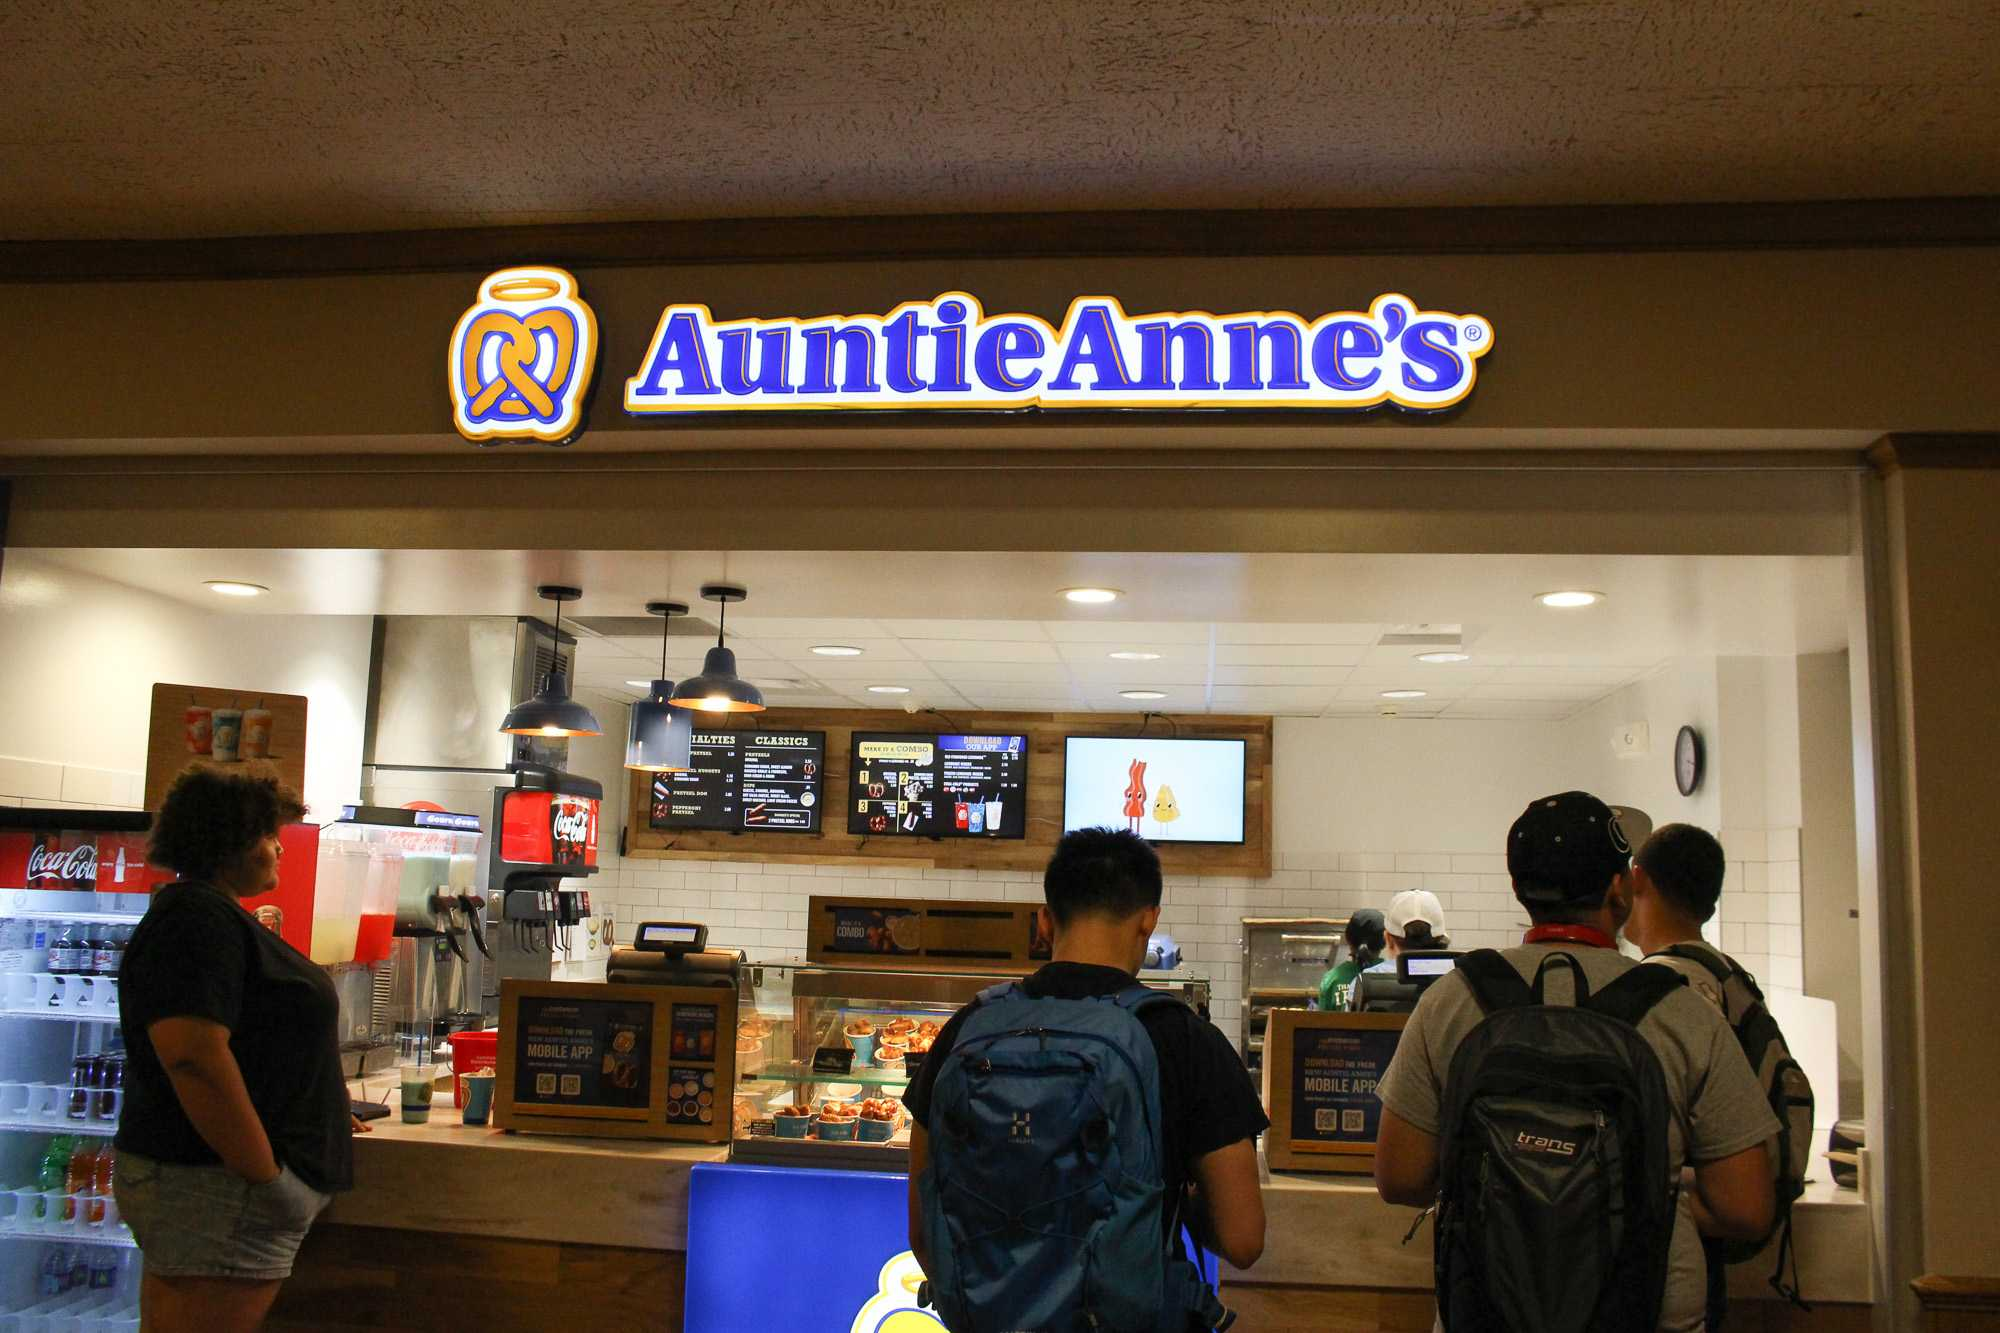 Students wait in line fir food at Auntie Anne's in the Illini Union on Tuesday, Aug. 23